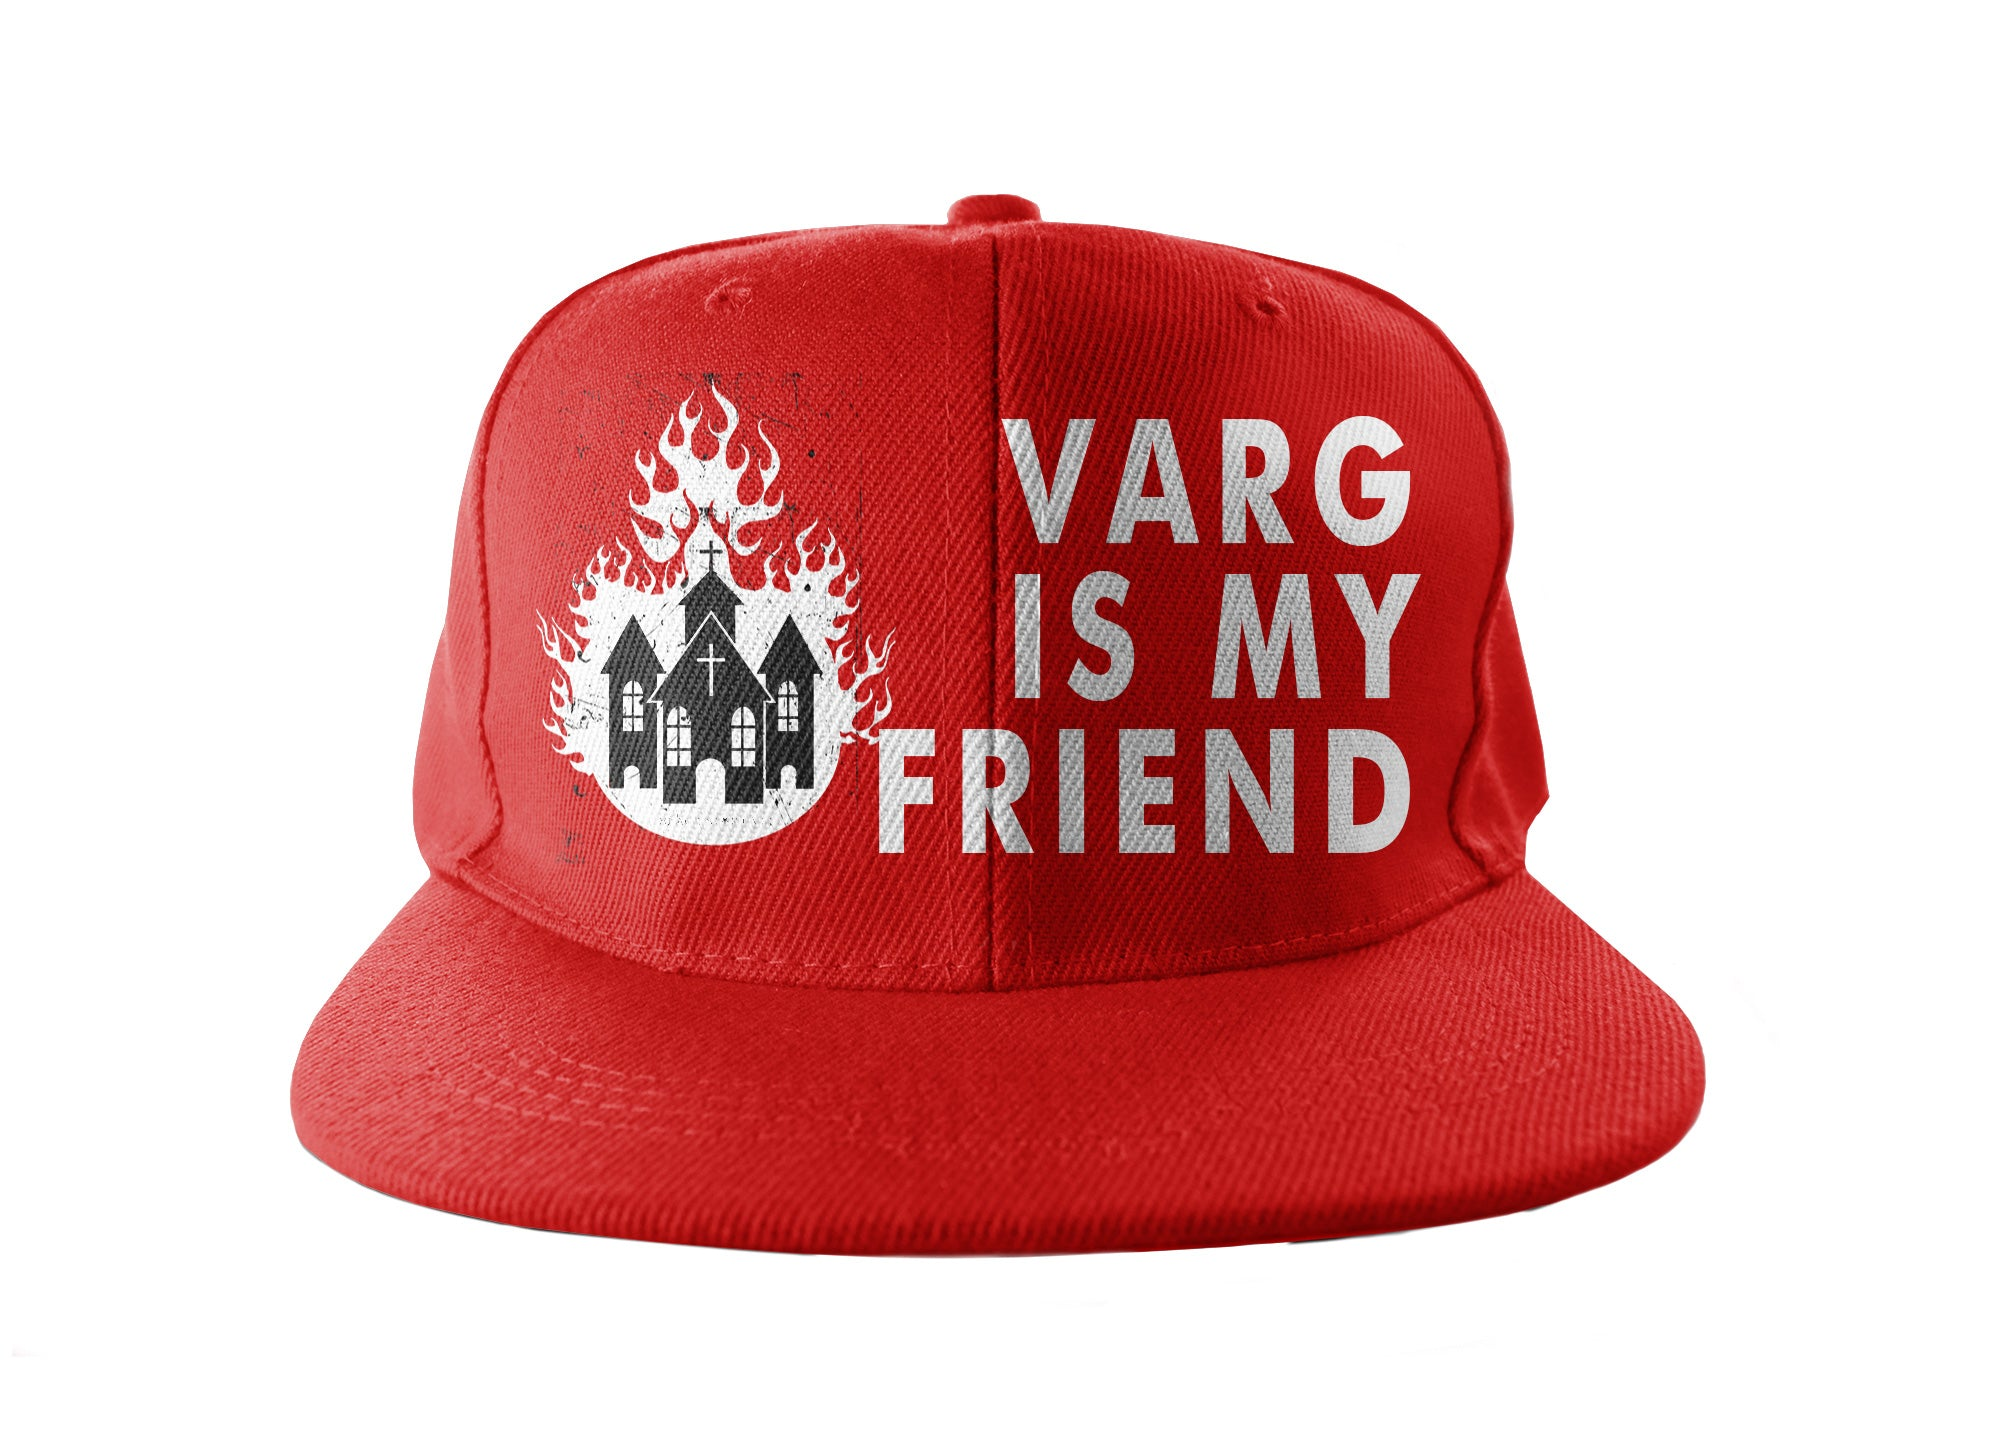 Red Varg is my friend